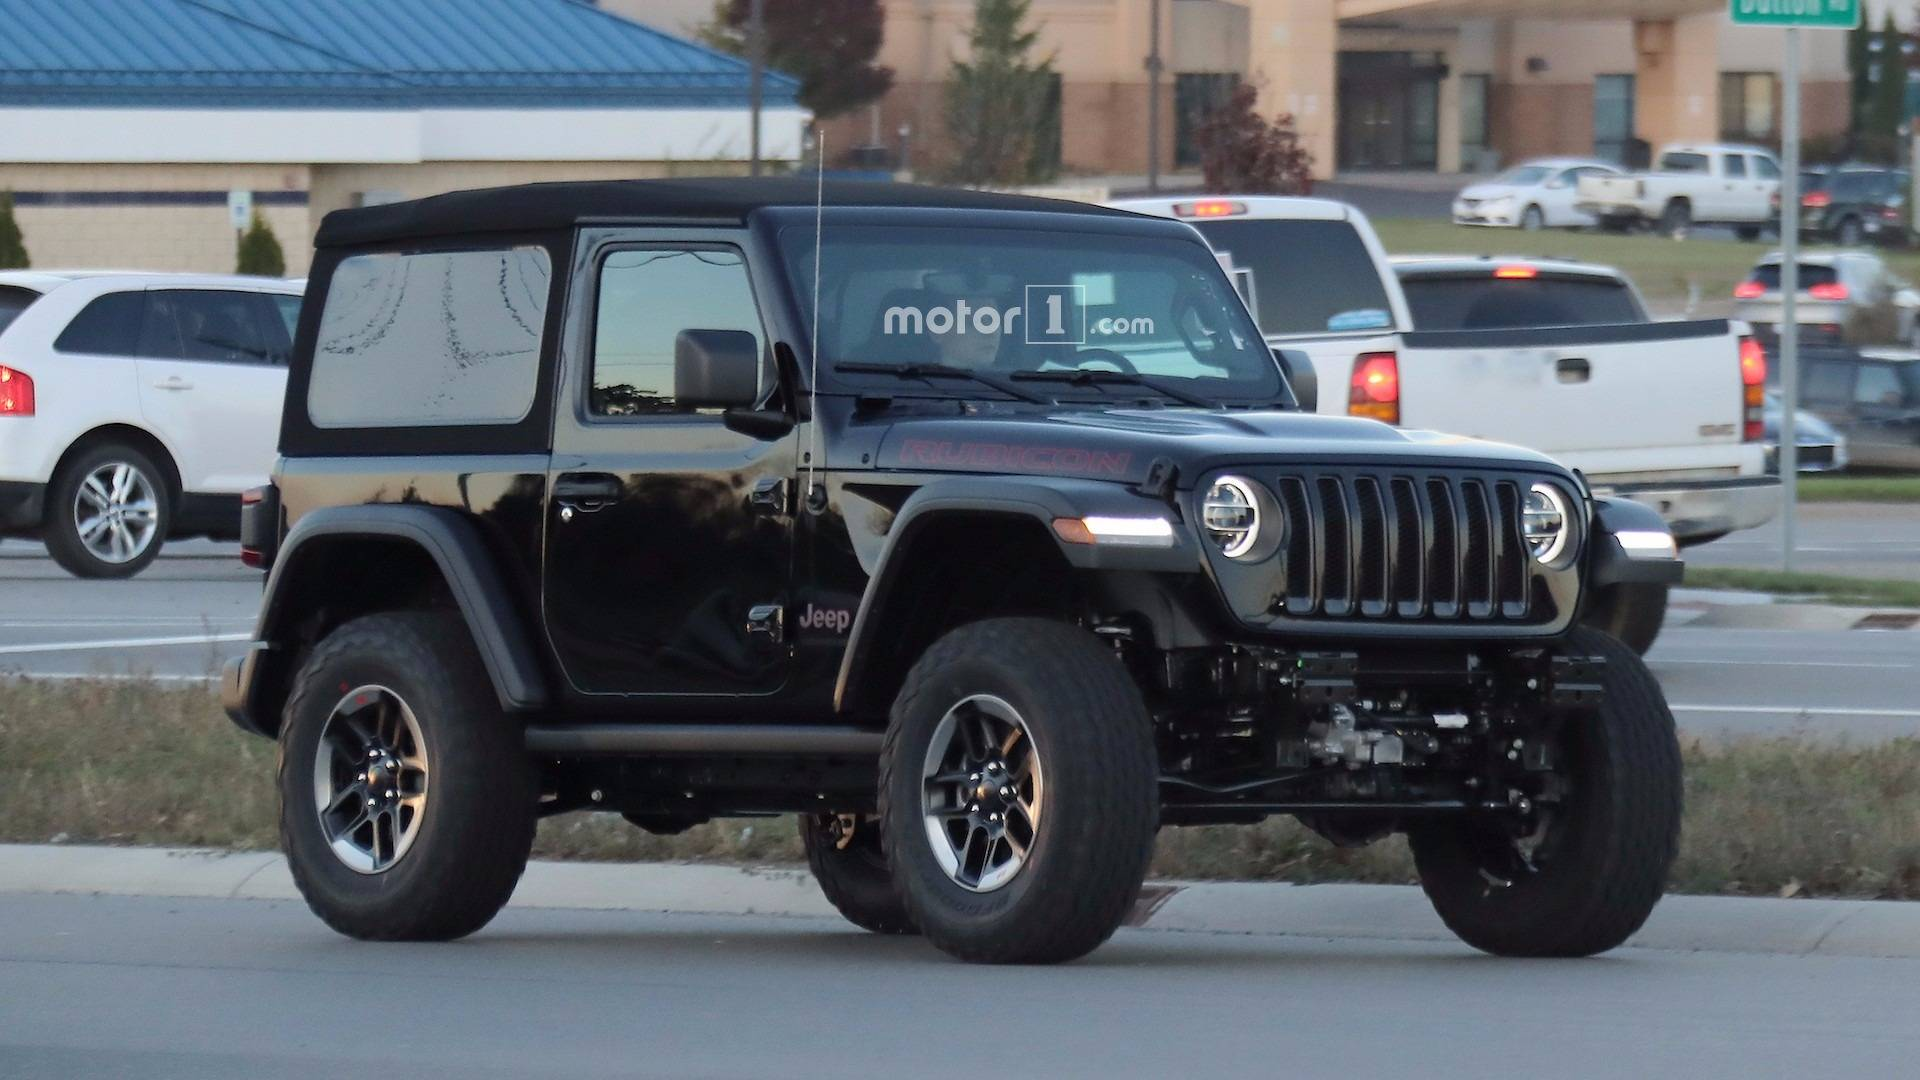 Entire 2018 Jeep Wrangler Lineup graphed Road 40